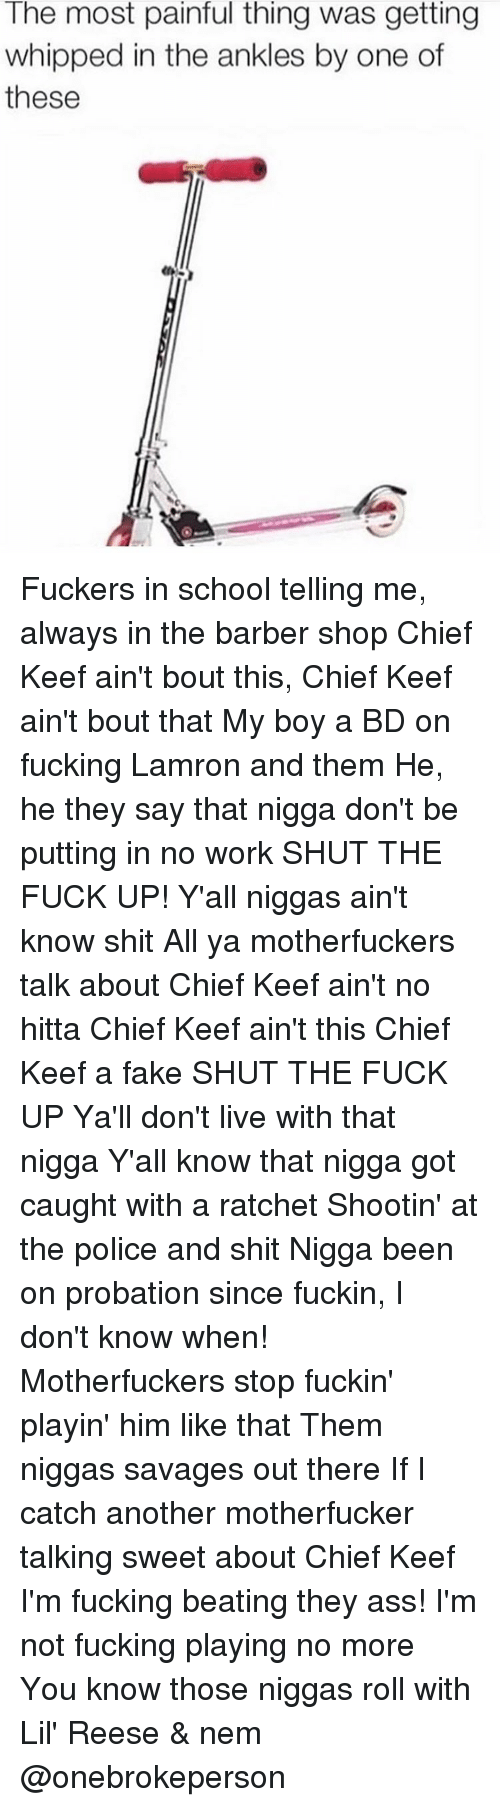 Barber, Chief Keef, and Memes: The most painful thing was getting  whipped in the ankles by one of  these Fuckers in school telling me, always in the barber shop Chief Keef ain't bout this, Chief Keef ain't bout that My boy a BD on fucking Lamron and them He, he they say that nigga don't be putting in no work SHUT THE FUCK UP! Y'all niggas ain't know shit All ya motherfuckers talk about Chief Keef ain't no hitta Chief Keef ain't this Chief Keef a fake SHUT THE FUCK UP Ya'll don't live with that nigga Y'all know that nigga got caught with a ratchet Shootin' at the police and shit Nigga been on probation since fuckin, I don't know when! Motherfuckers stop fuckin' playin' him like that Them niggas savages out there If I catch another motherfucker talking sweet about Chief Keef I'm fucking beating they ass! I'm not fucking playing no more You know those niggas roll with Lil' Reese & nem @onebrokeperson